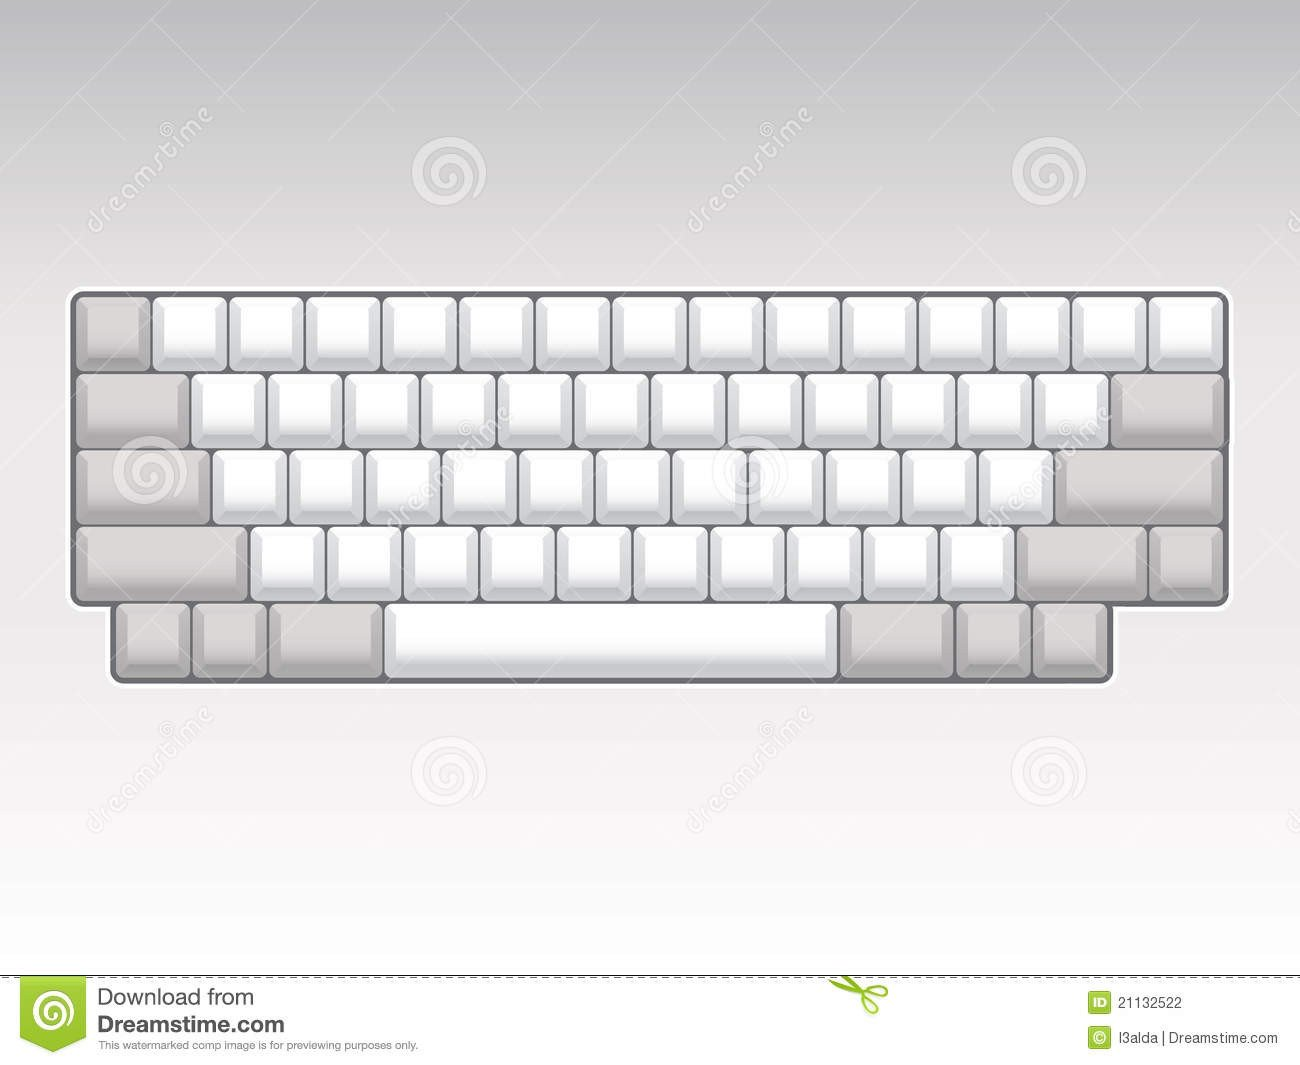 Free Printable Keyboarding Worksheets Library Blank Puter Keyboard Clip Art Download